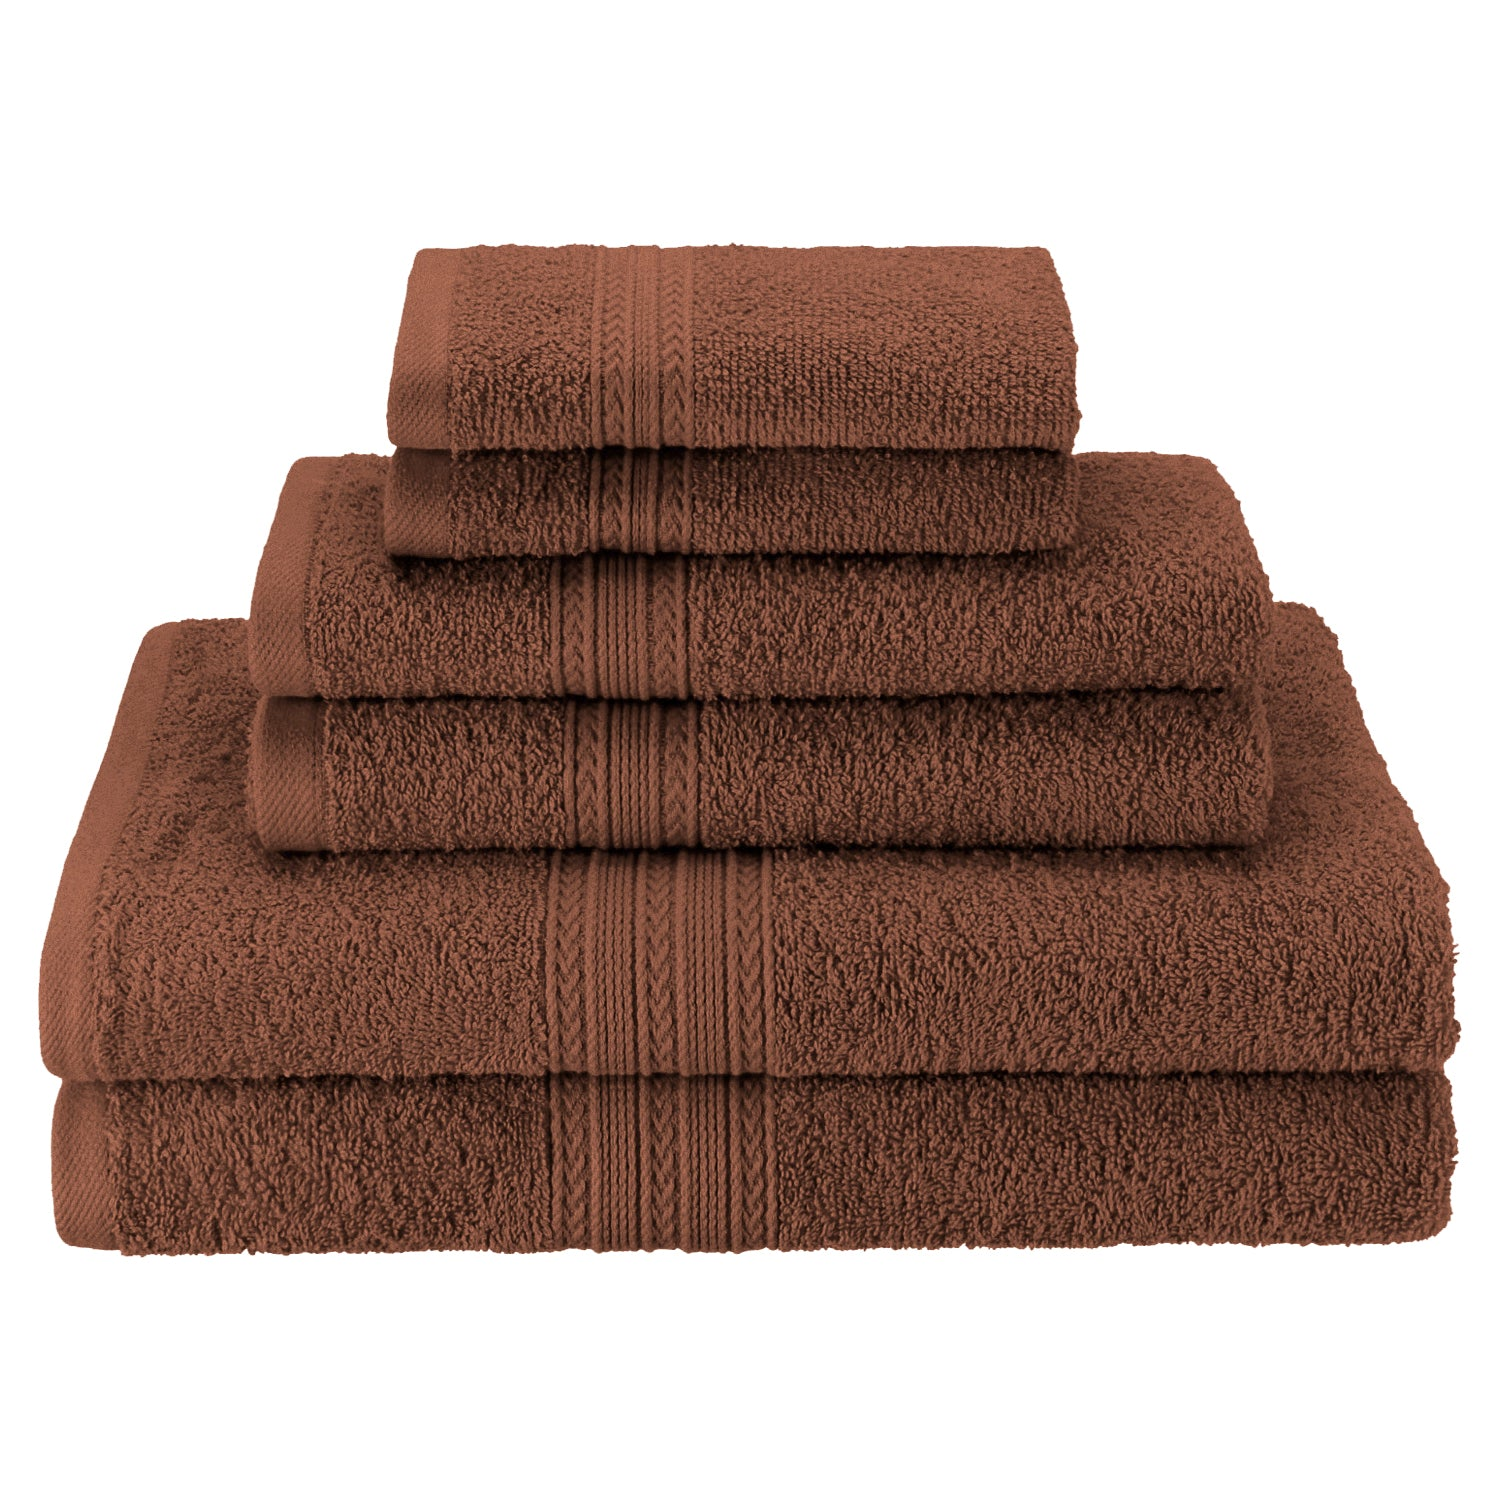 Eco-Friendly 6-Piece Cotton Bath Towel Set